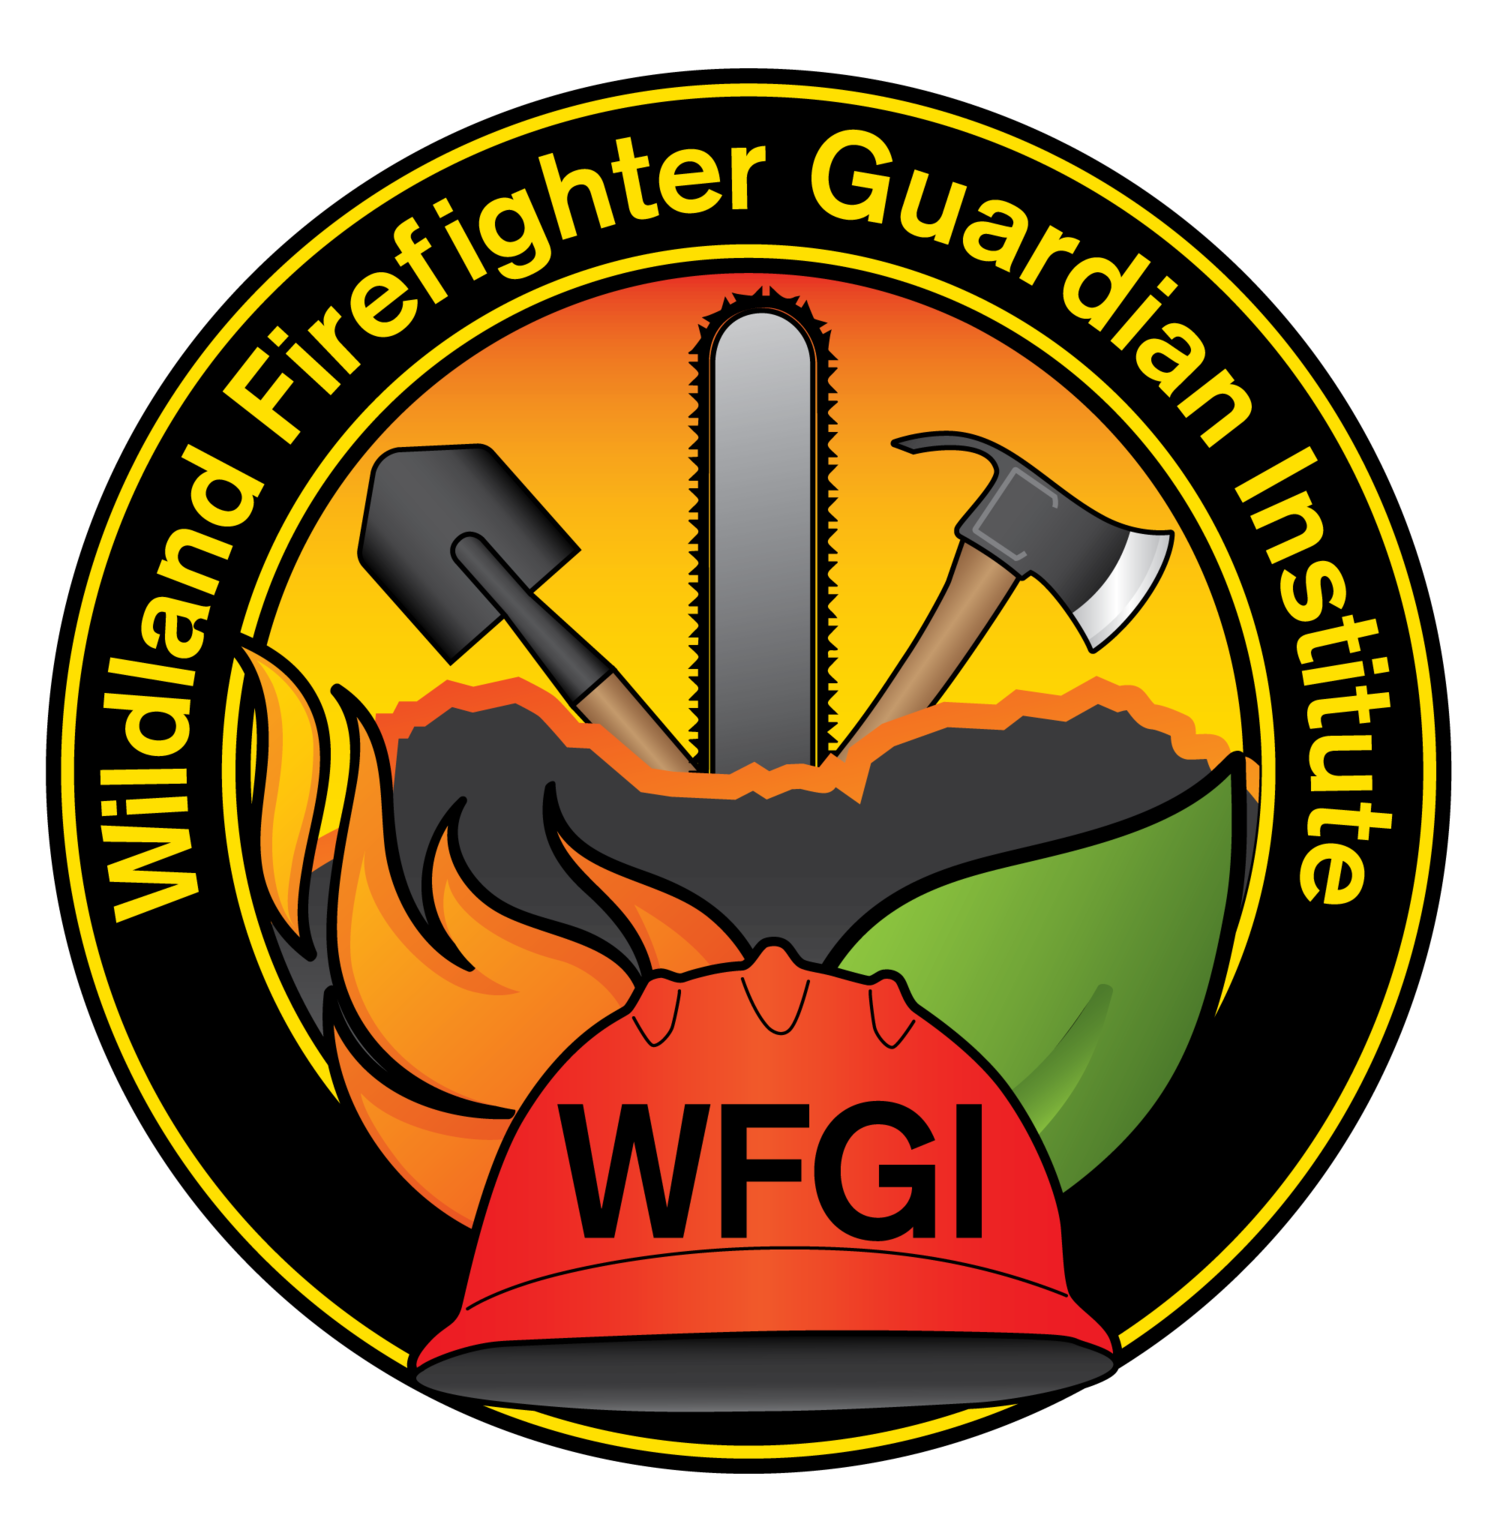 Wildland Firefighter Guardian Institute